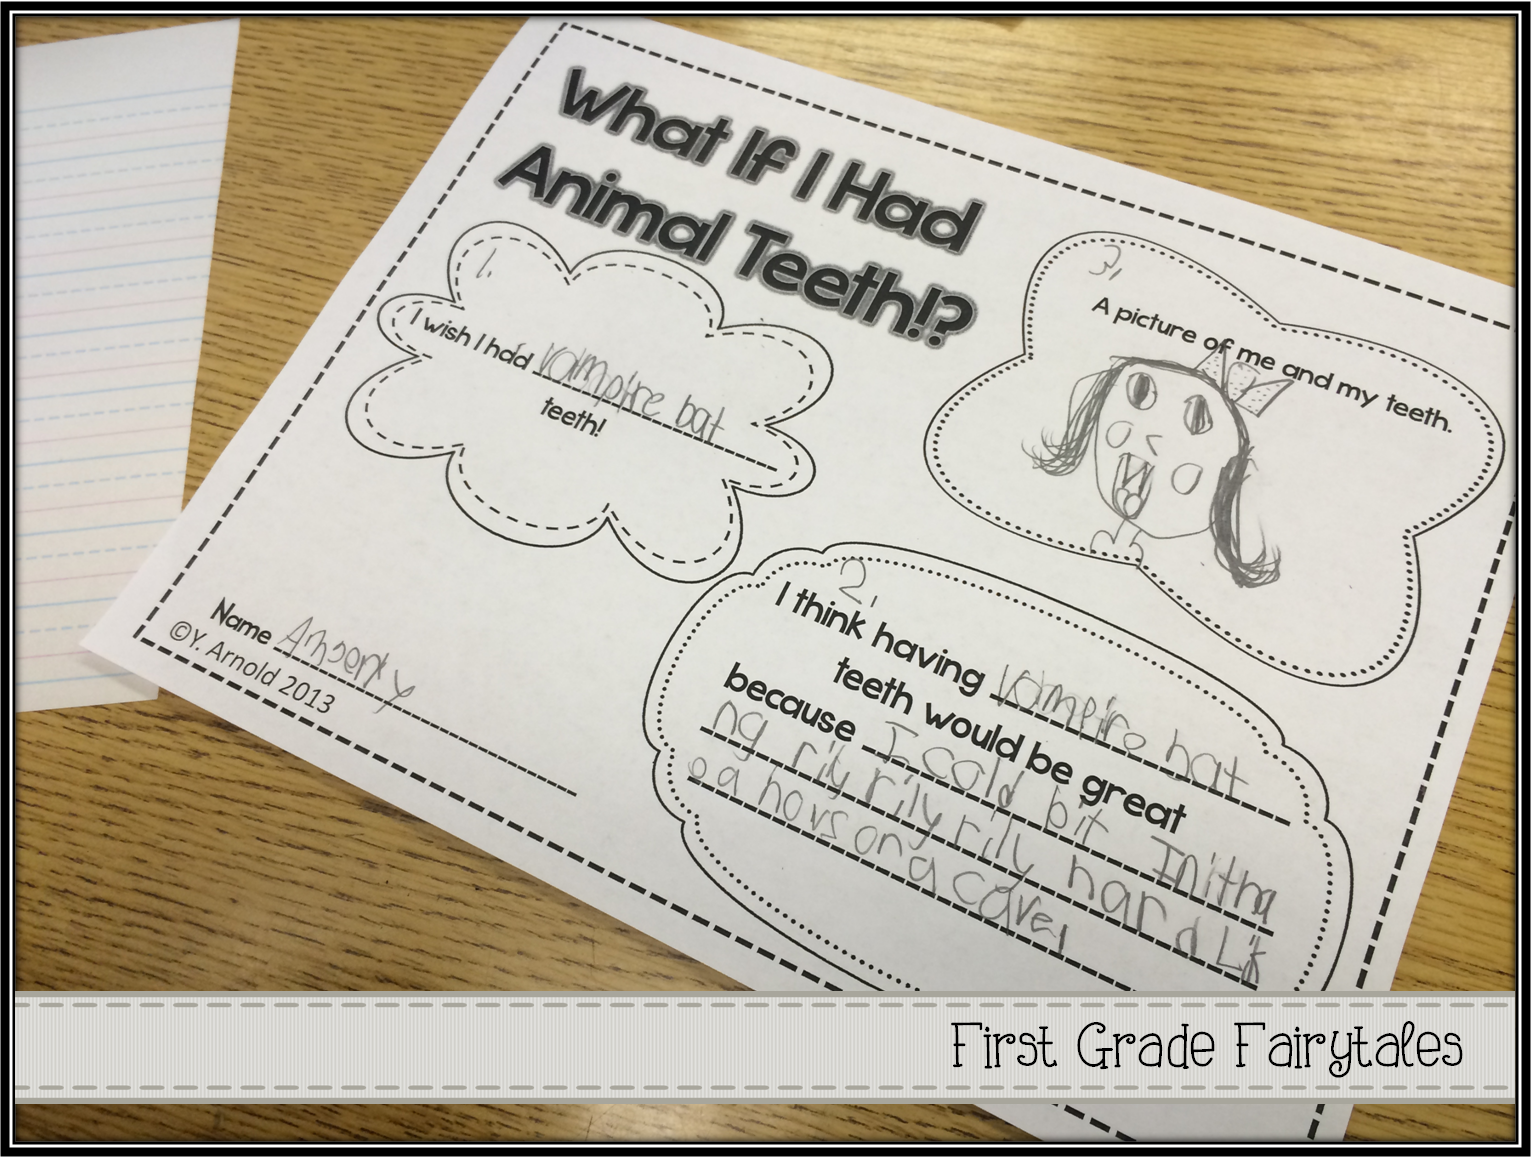 First grade life science worksheets what do animals eat 1 - First Grade Fairytales What If You Had Animal Teeth Hair